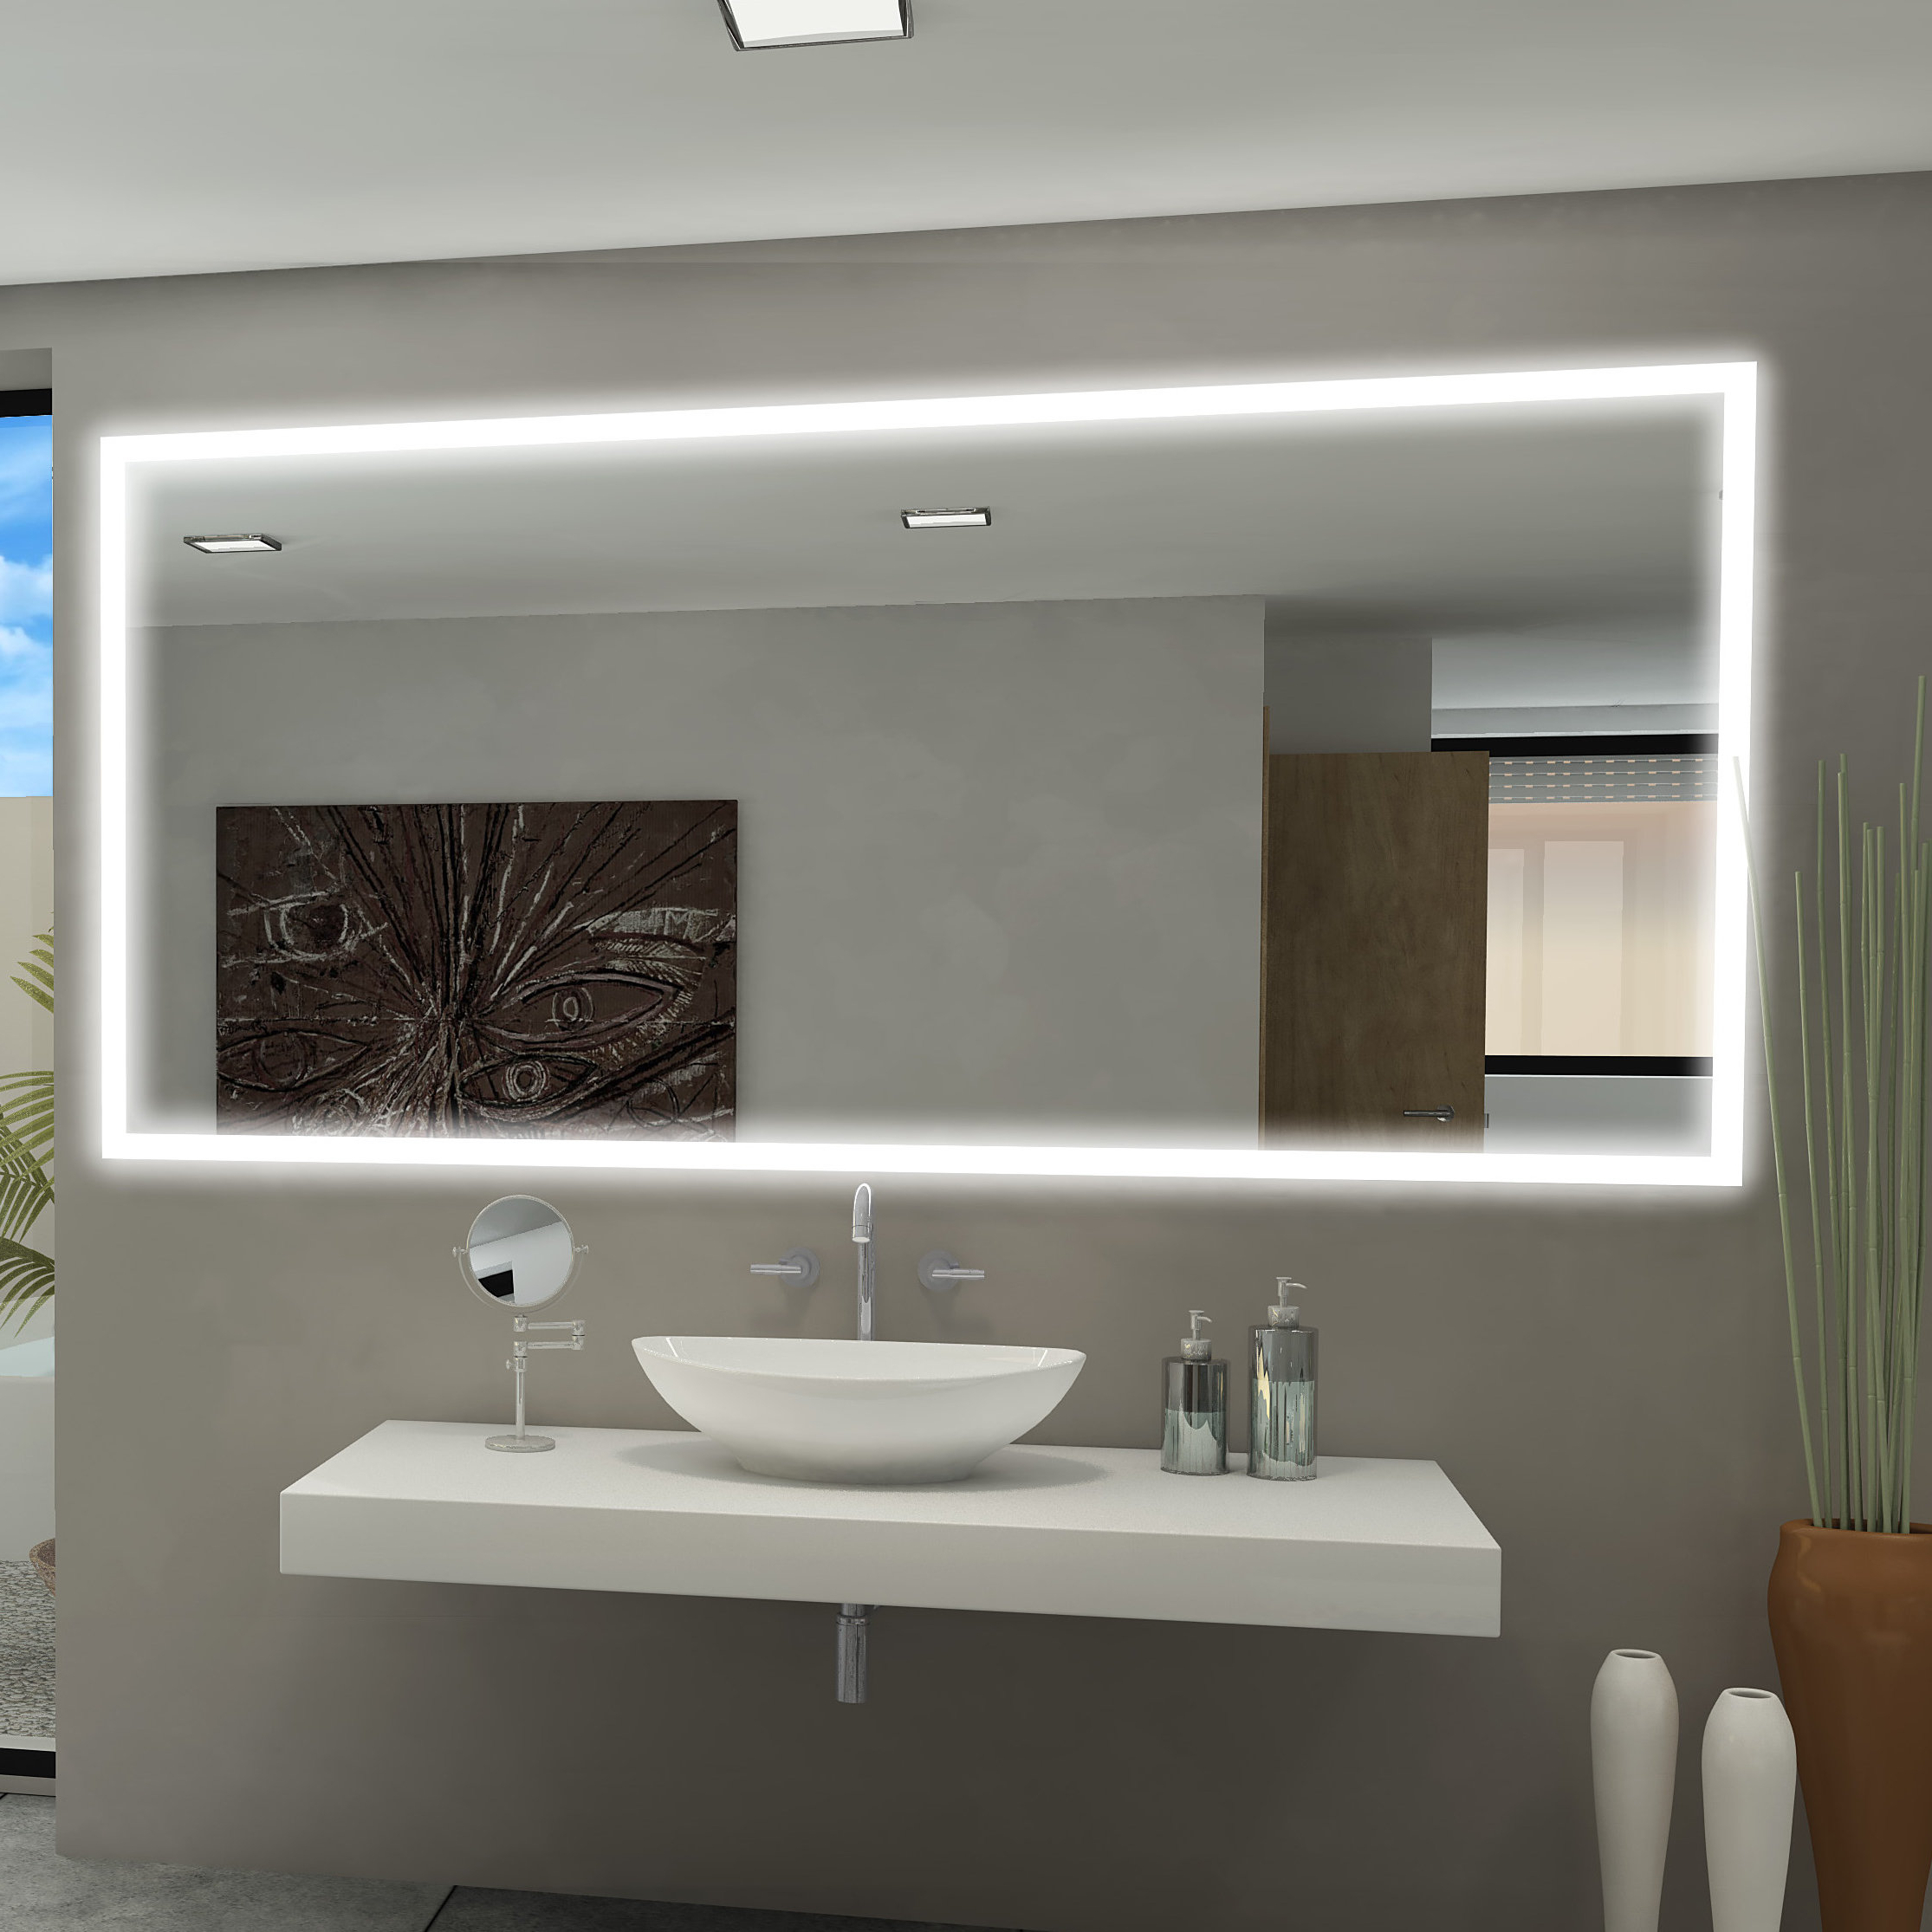 Backlit Bathroom Wall Mirrors In 2019 Rectangle Backlit Bathroom/vanity Wall Mirror (View 4 of 20)